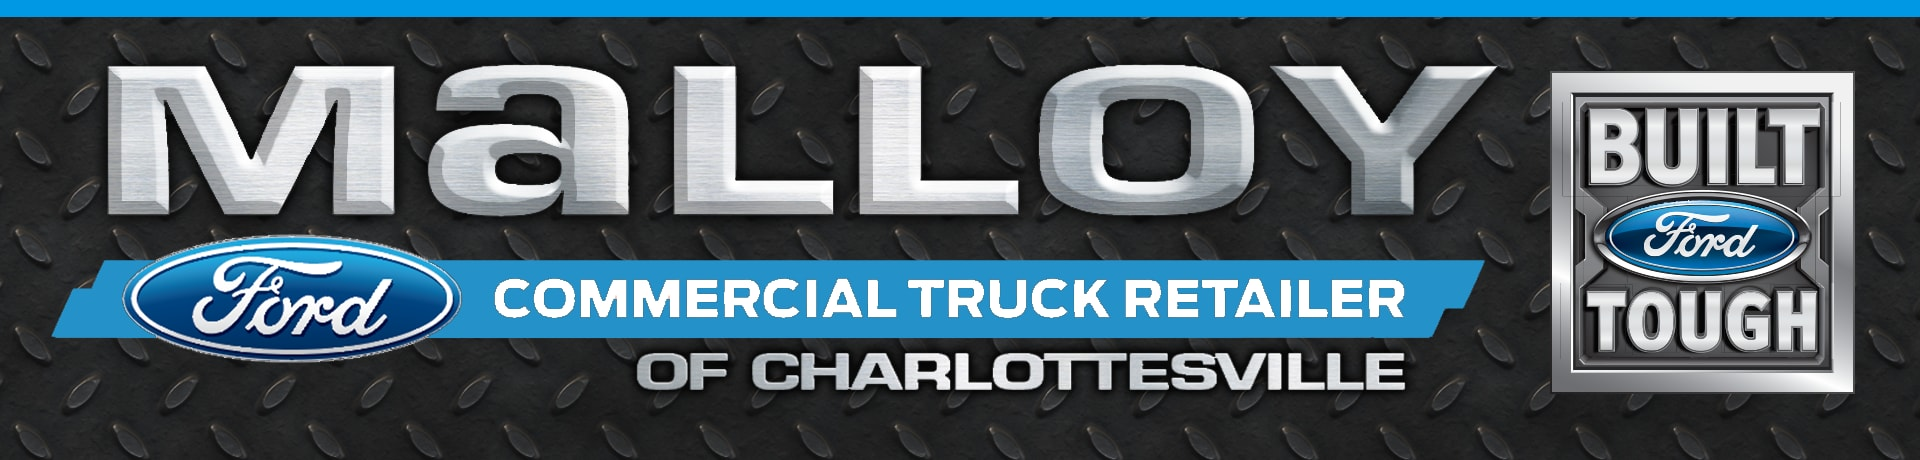 Commercials Trucks In Charlottesville